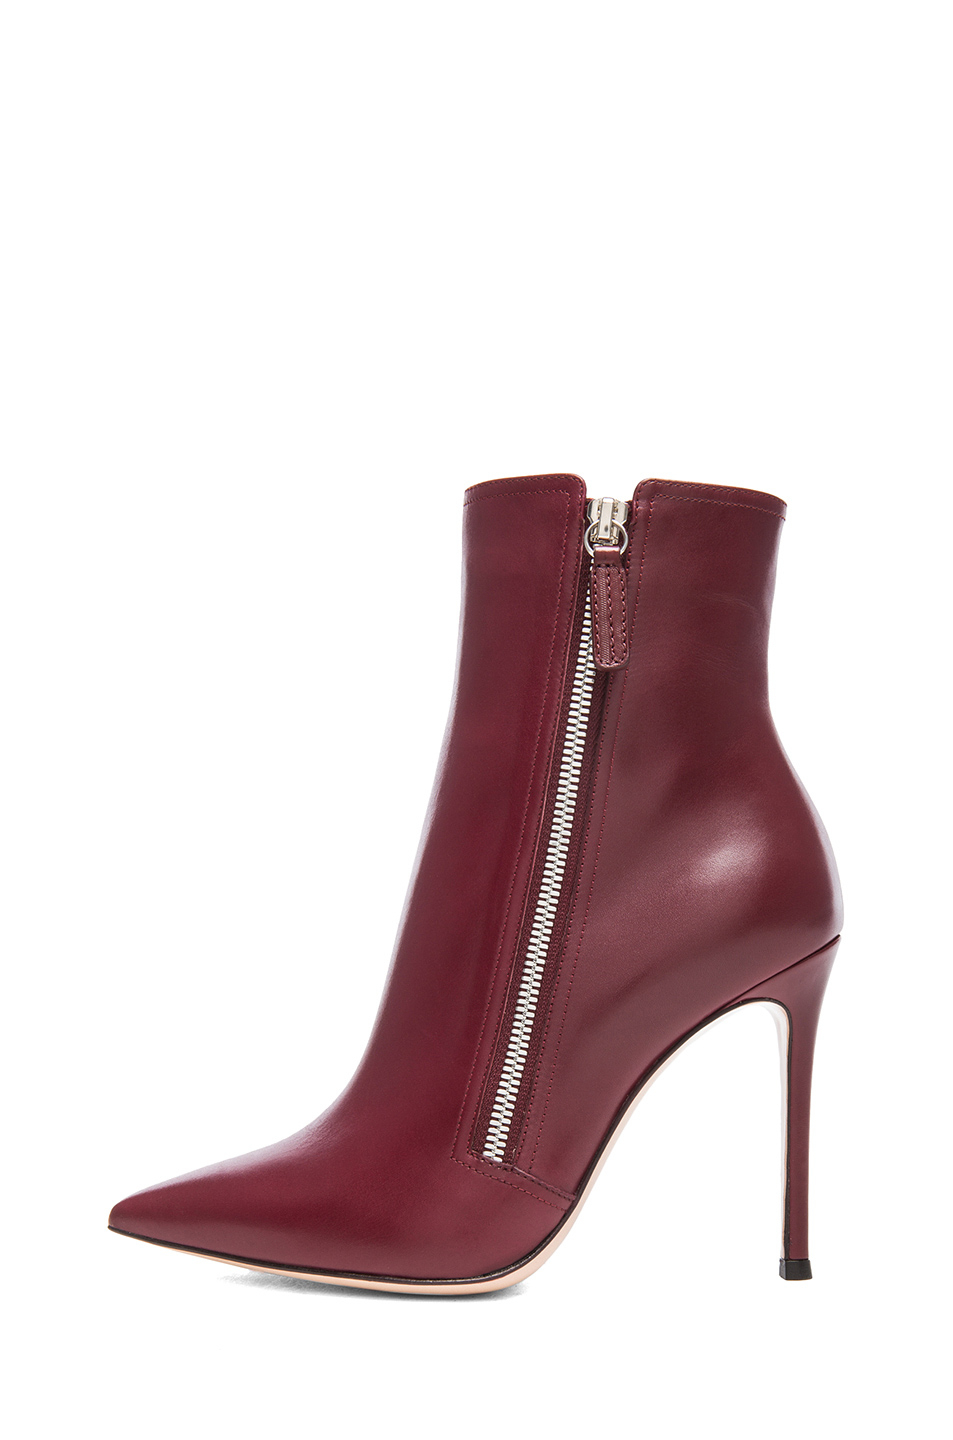 gianvito rossi leather pointed ankle leather boots in red lyst. Black Bedroom Furniture Sets. Home Design Ideas